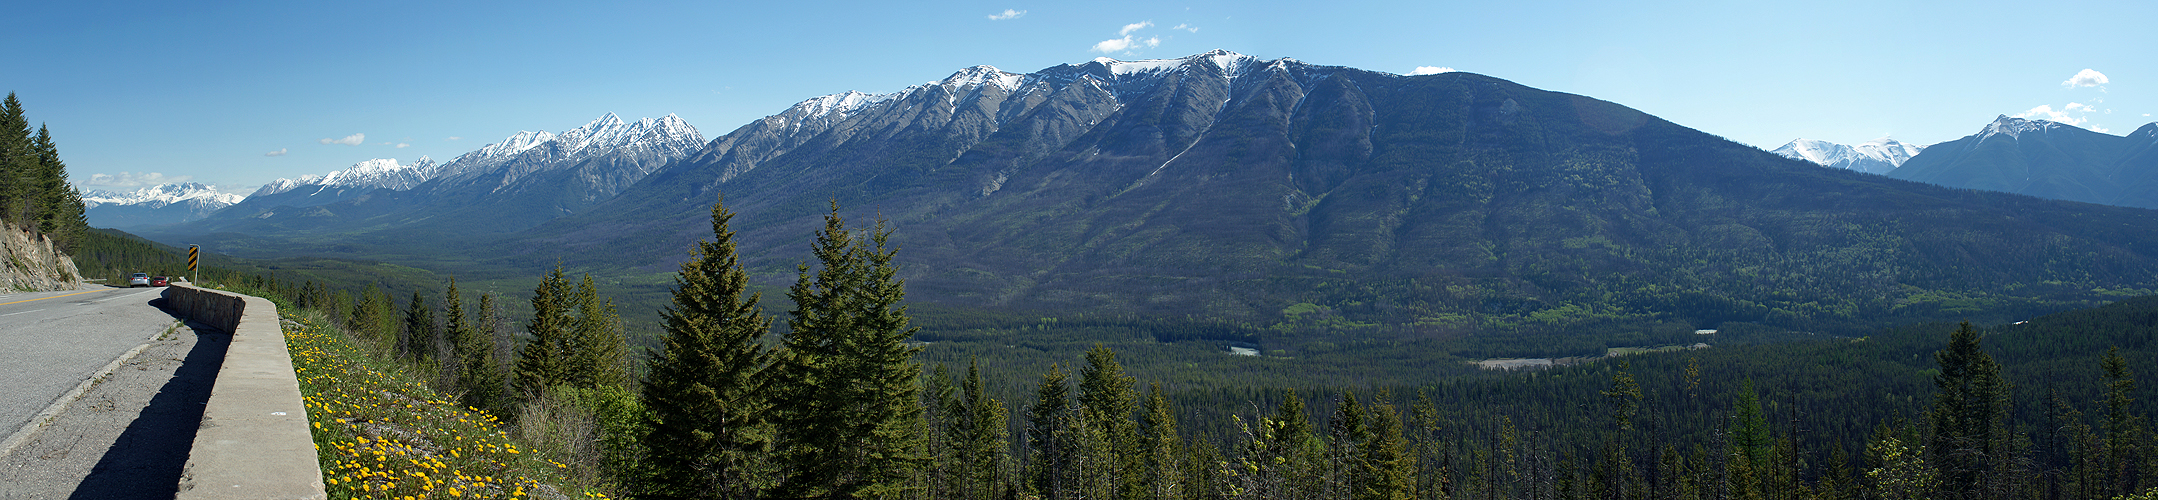 Photo panoramique de la vallée de la rivière Kootenay (Kootenay)